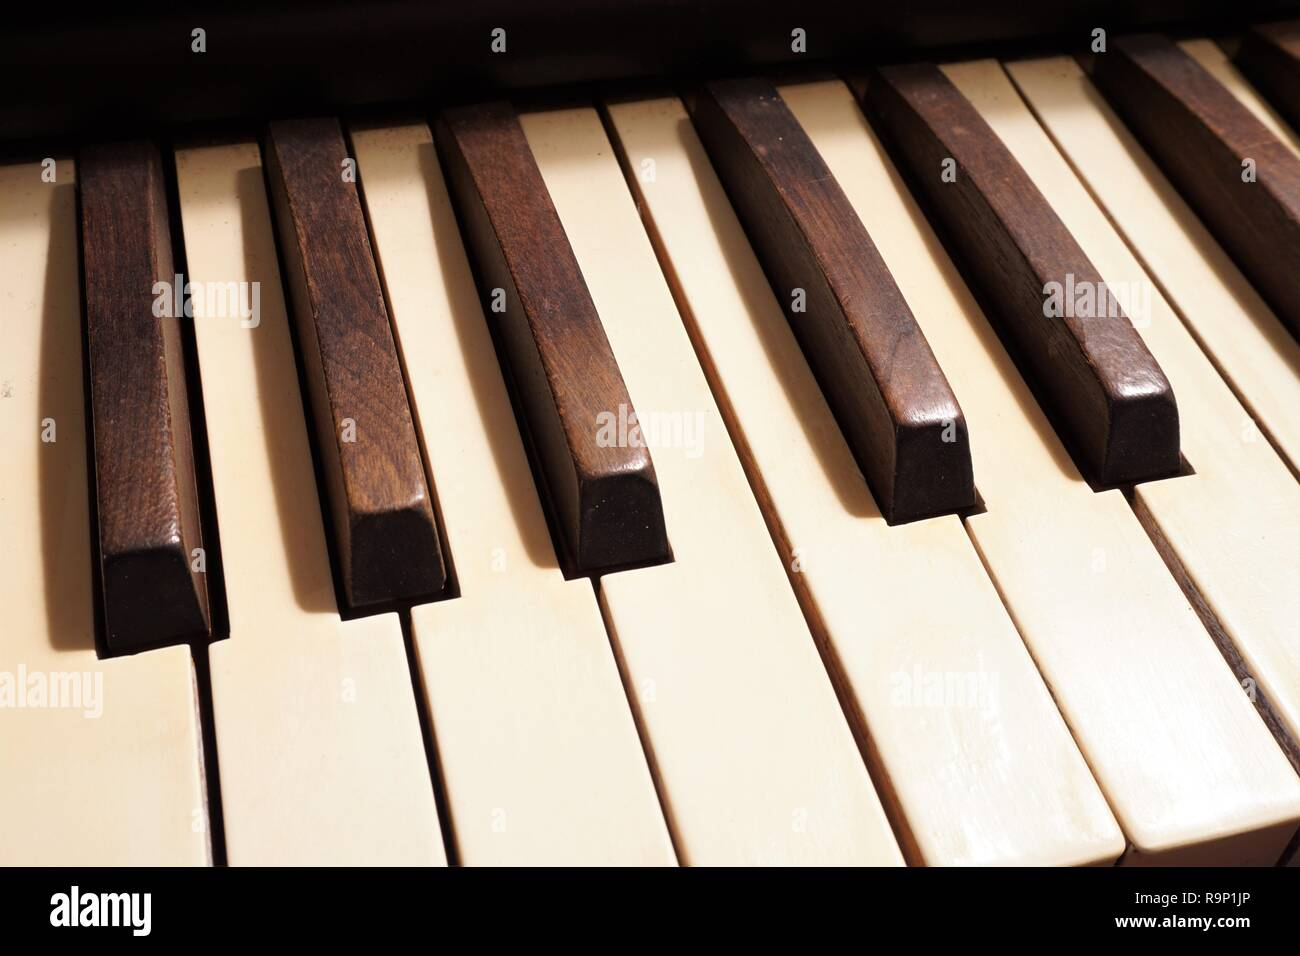 Close up of the wooden keys of an old pump organ - Stock Image